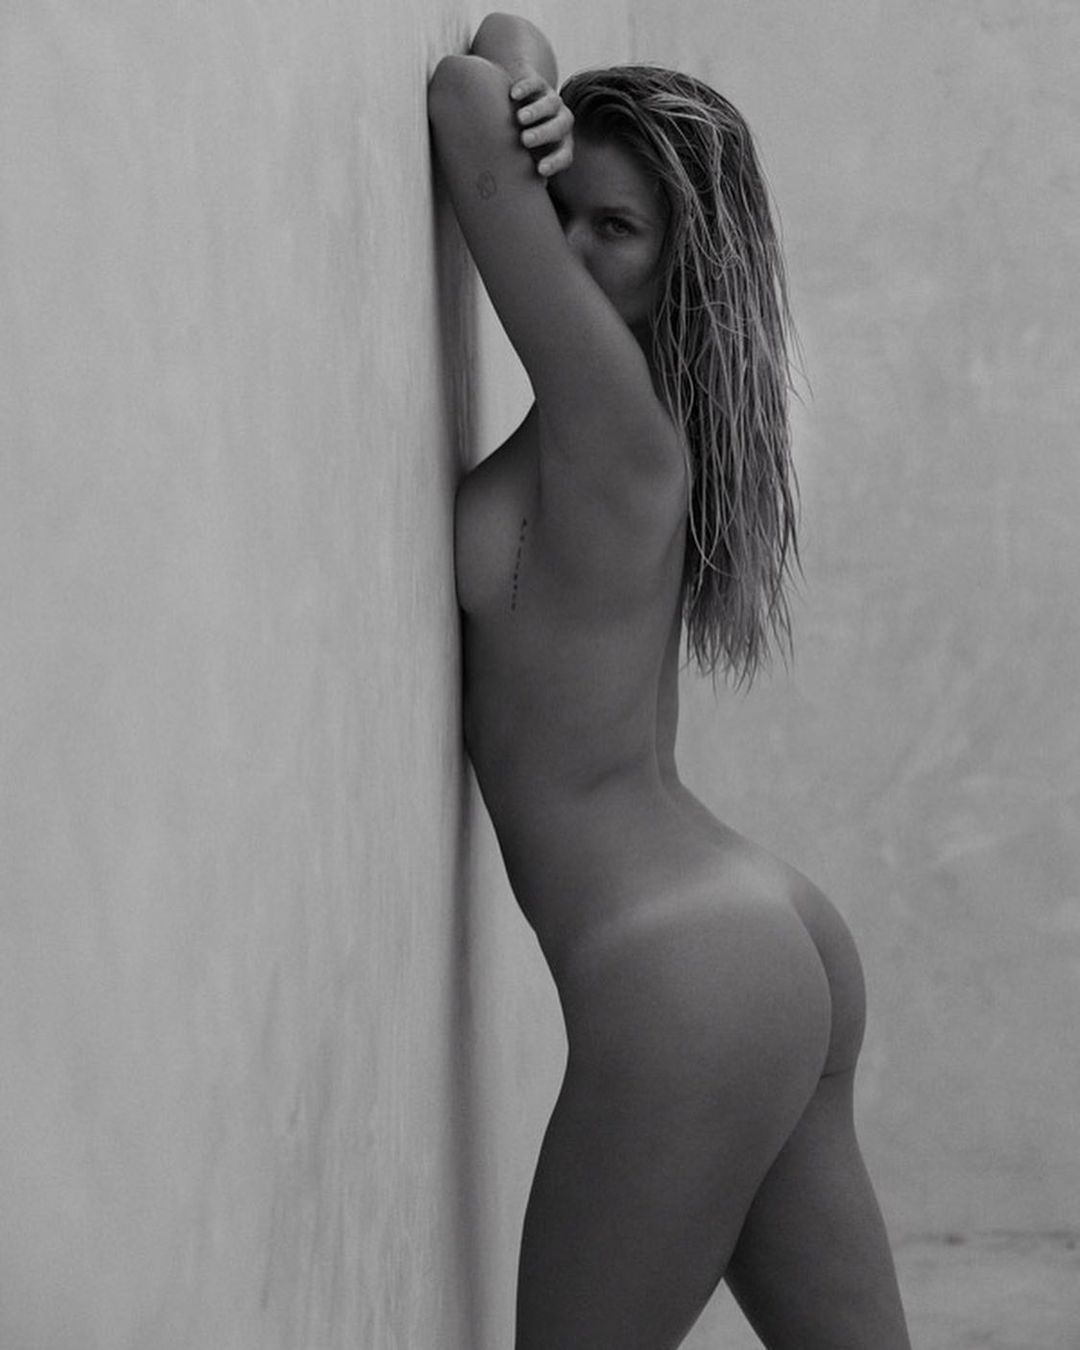 Josie Canseco Naked